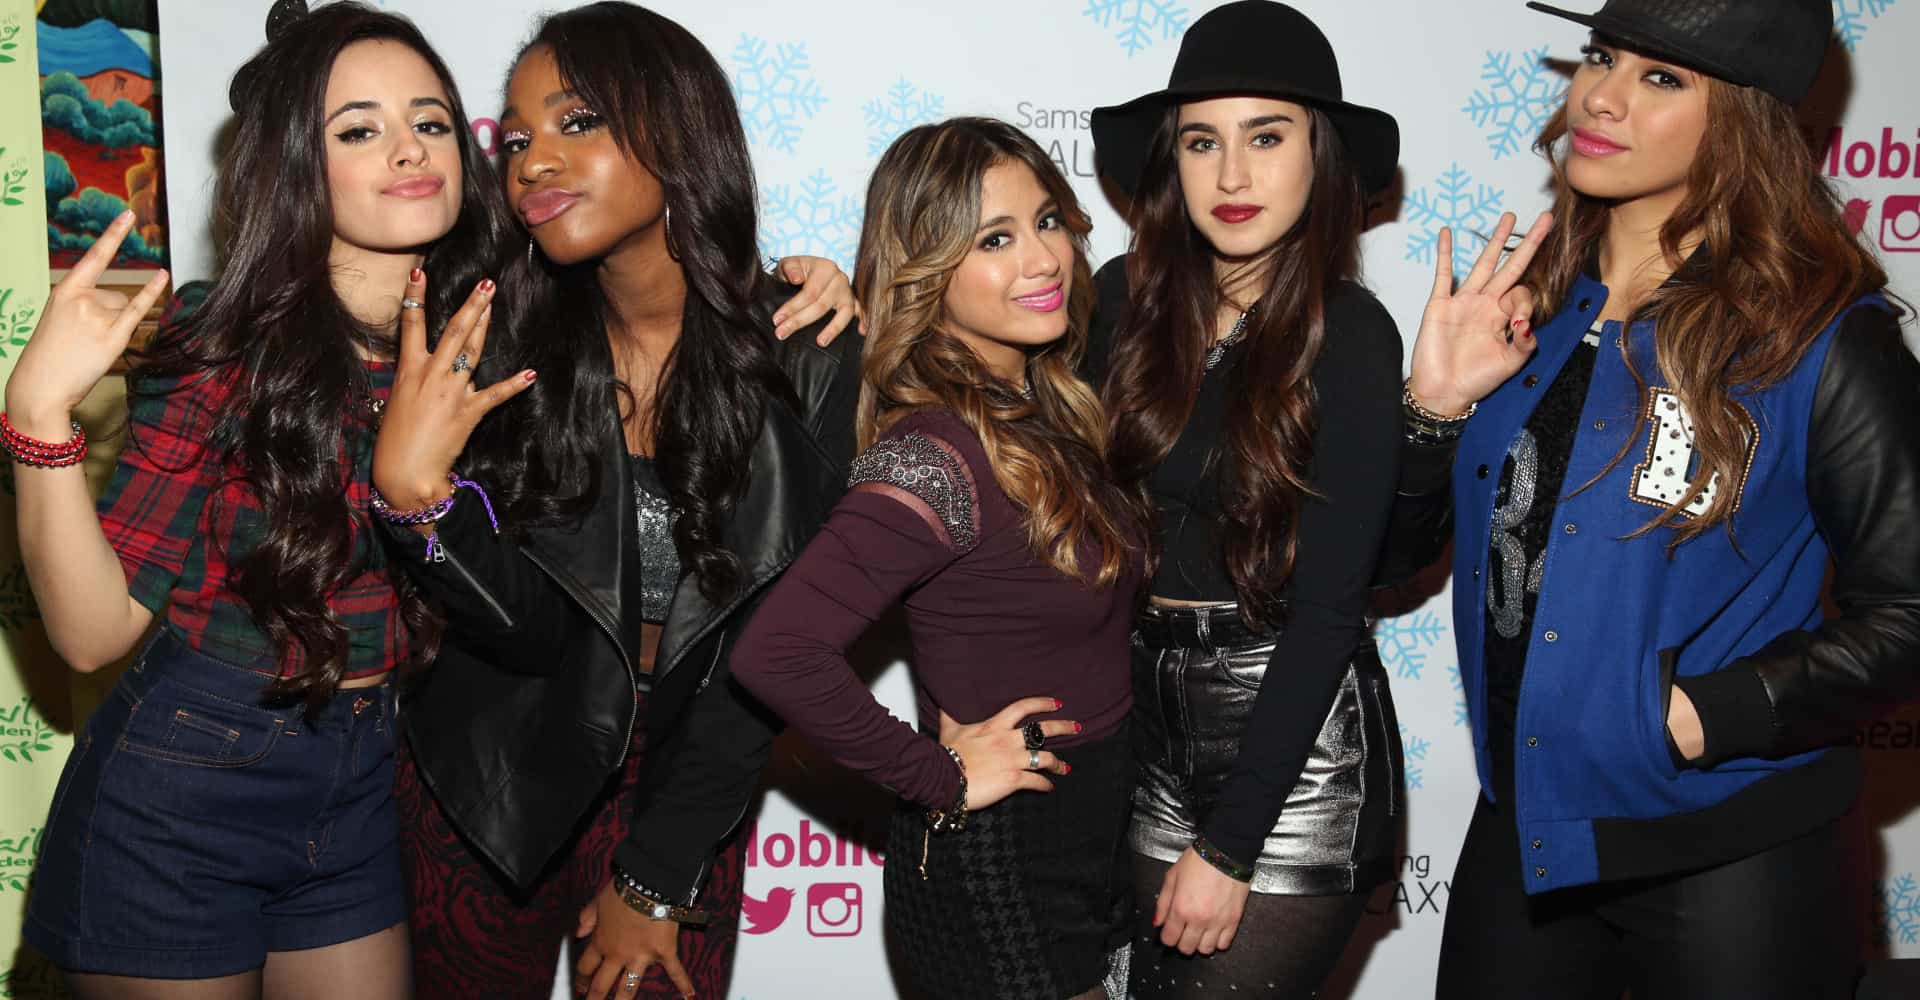 American girl band Fifth Harmony breaks fans' hearts as they split up for good